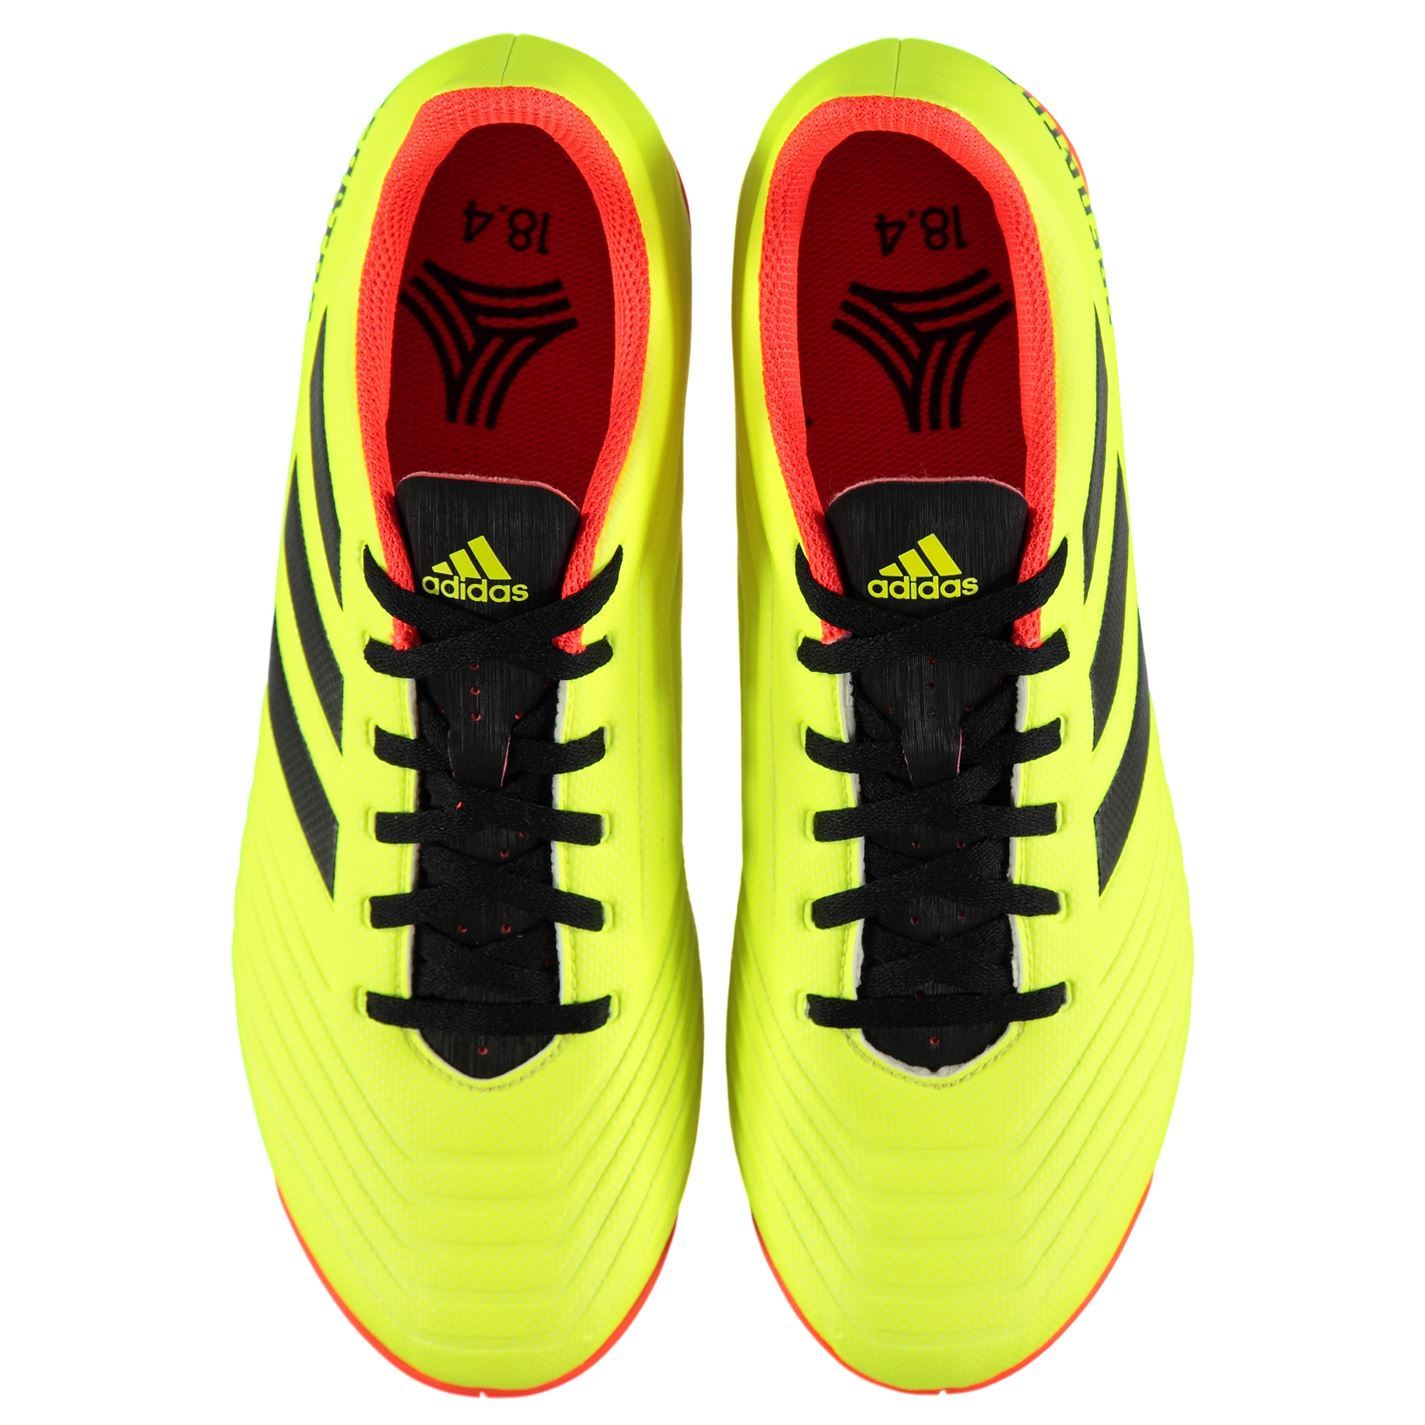 fdeec54c006 ... adidas Predator Tango 18.4 Indoor Football Trainers Mens Yellow Soccer  Shoes